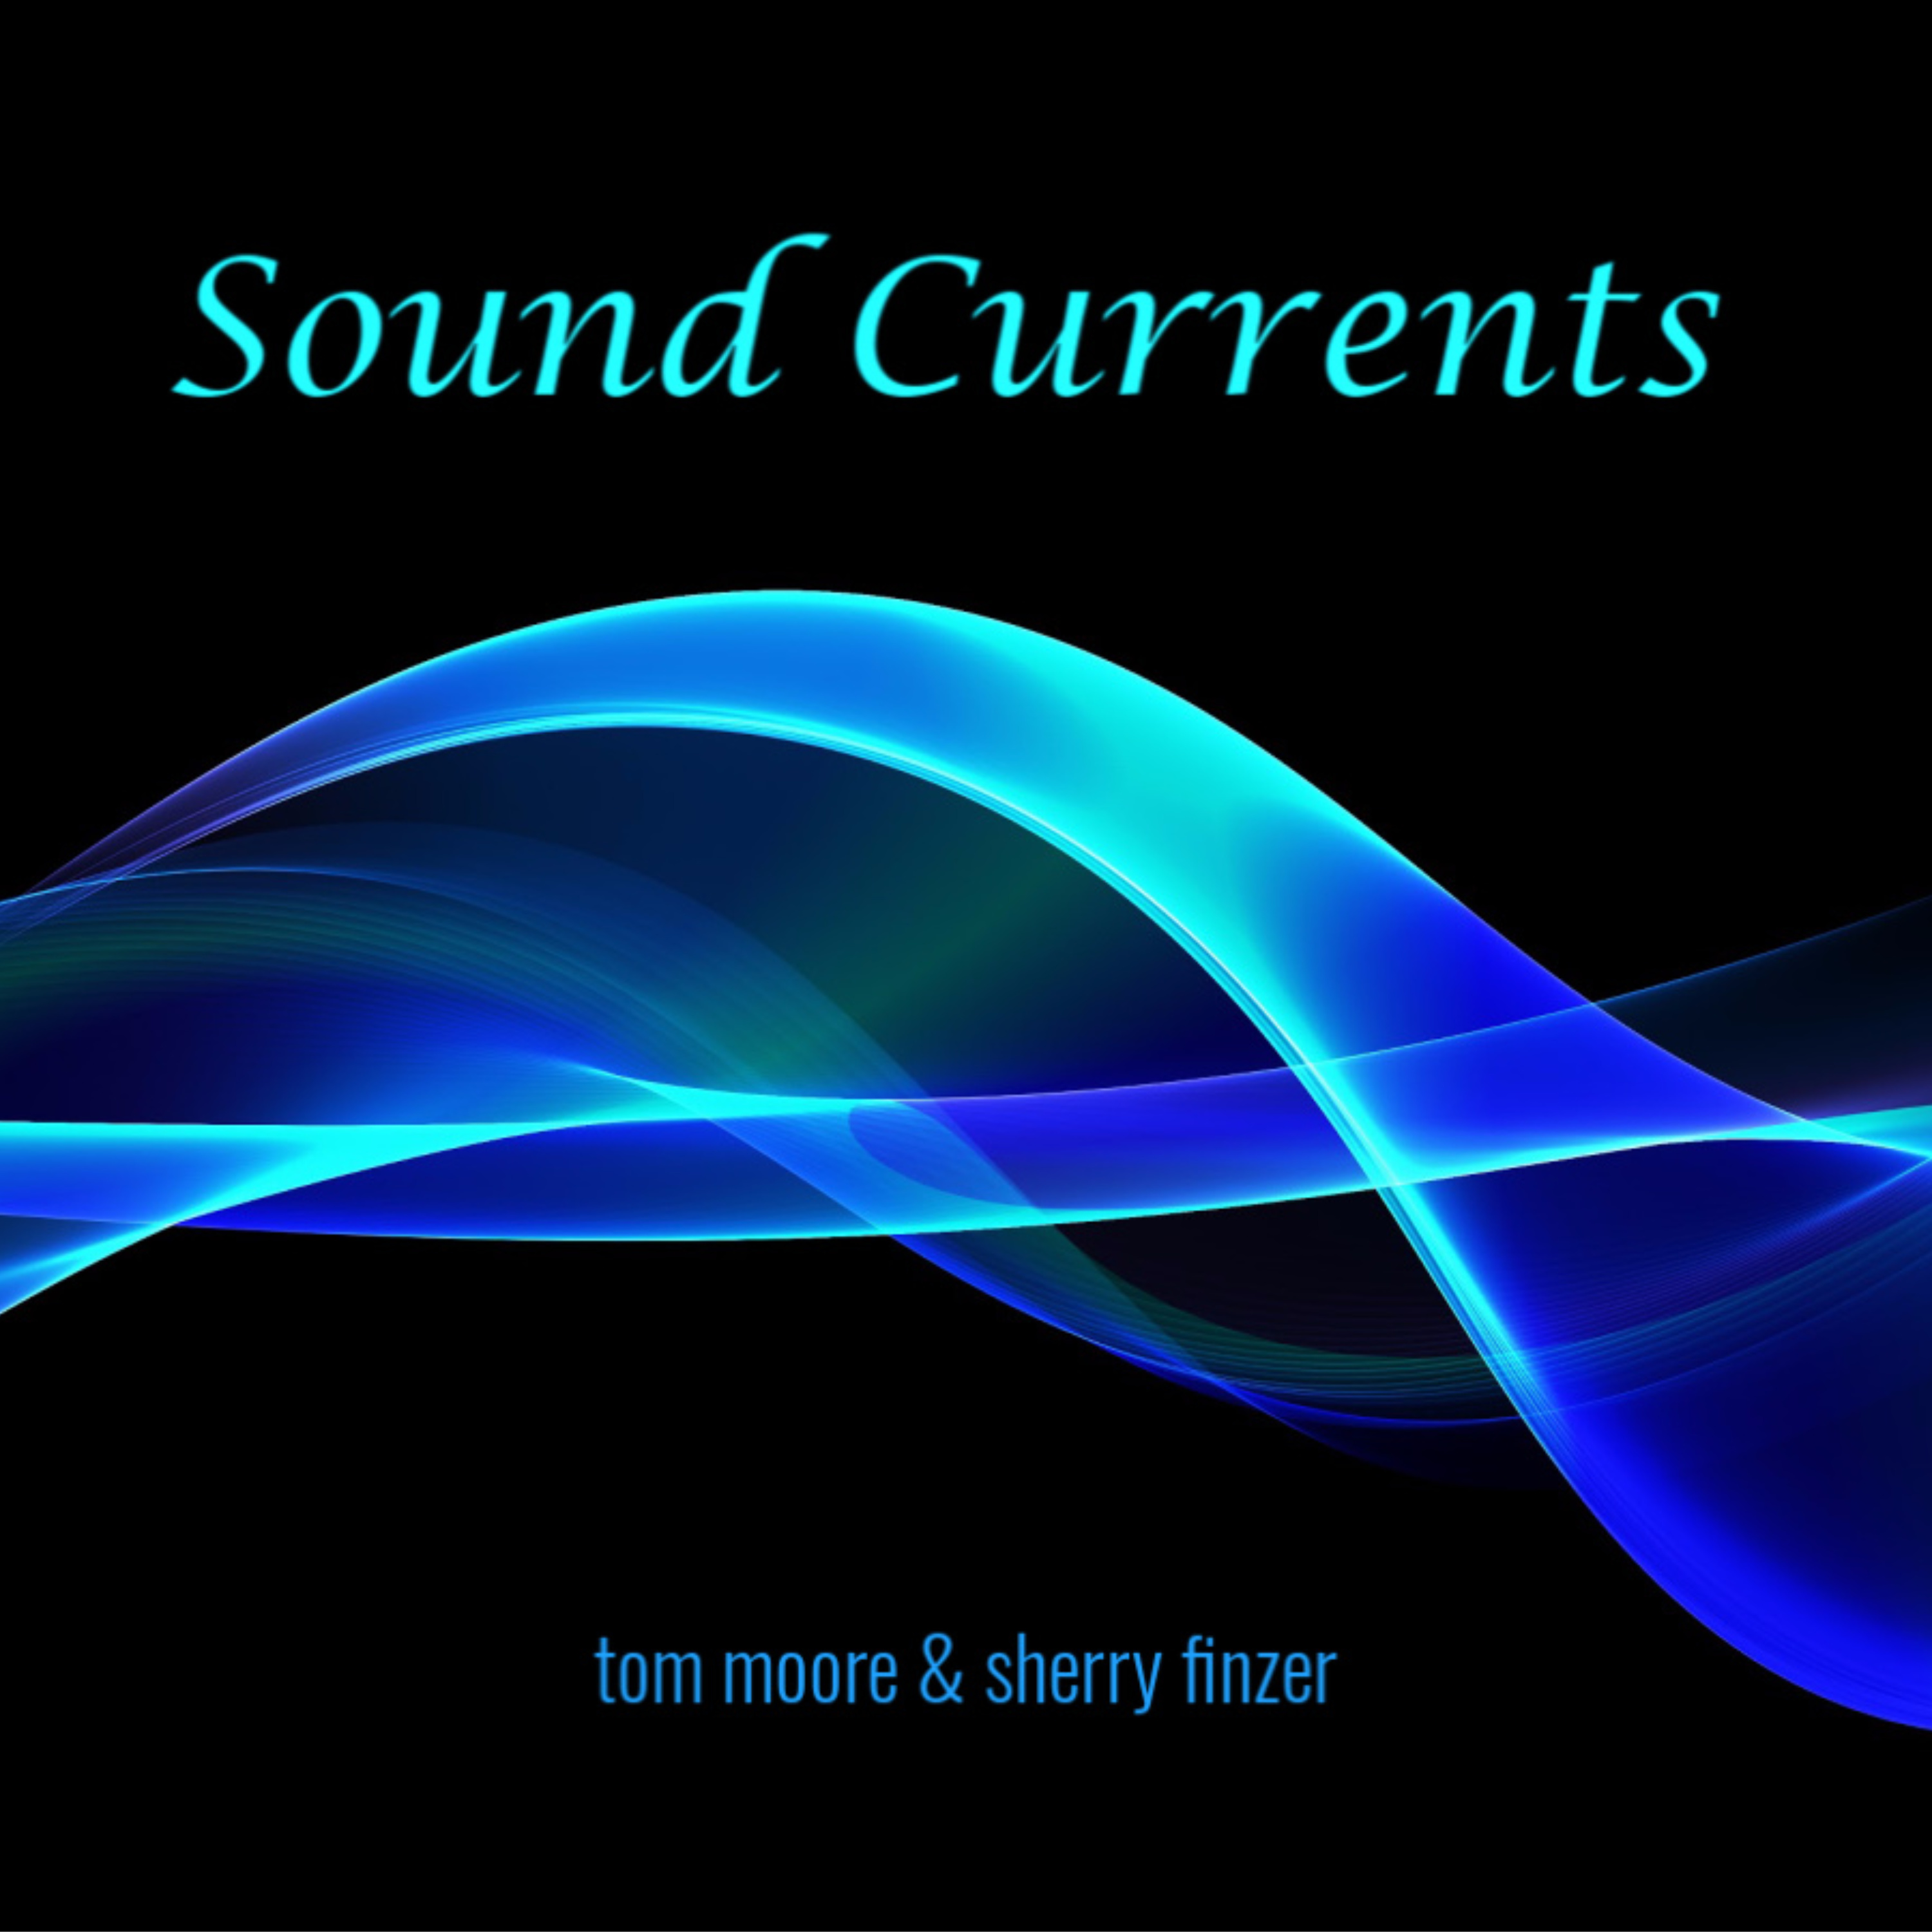 Sound Currents - Tom Moore & Sherry